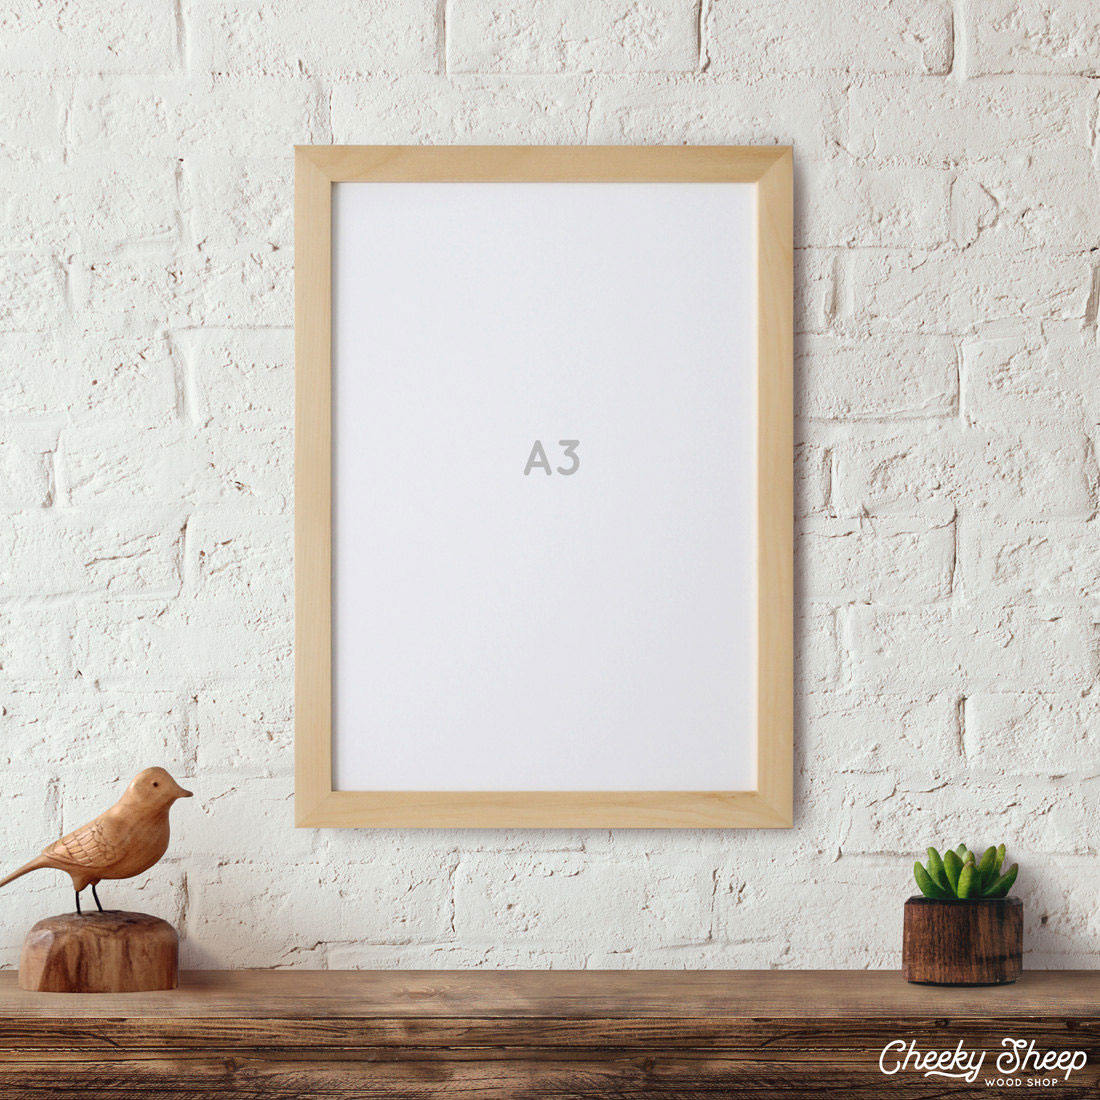 A3 Picture Frame 29.7 cm x 42.0 cm Frame, A3 Poster Frame, Large ...